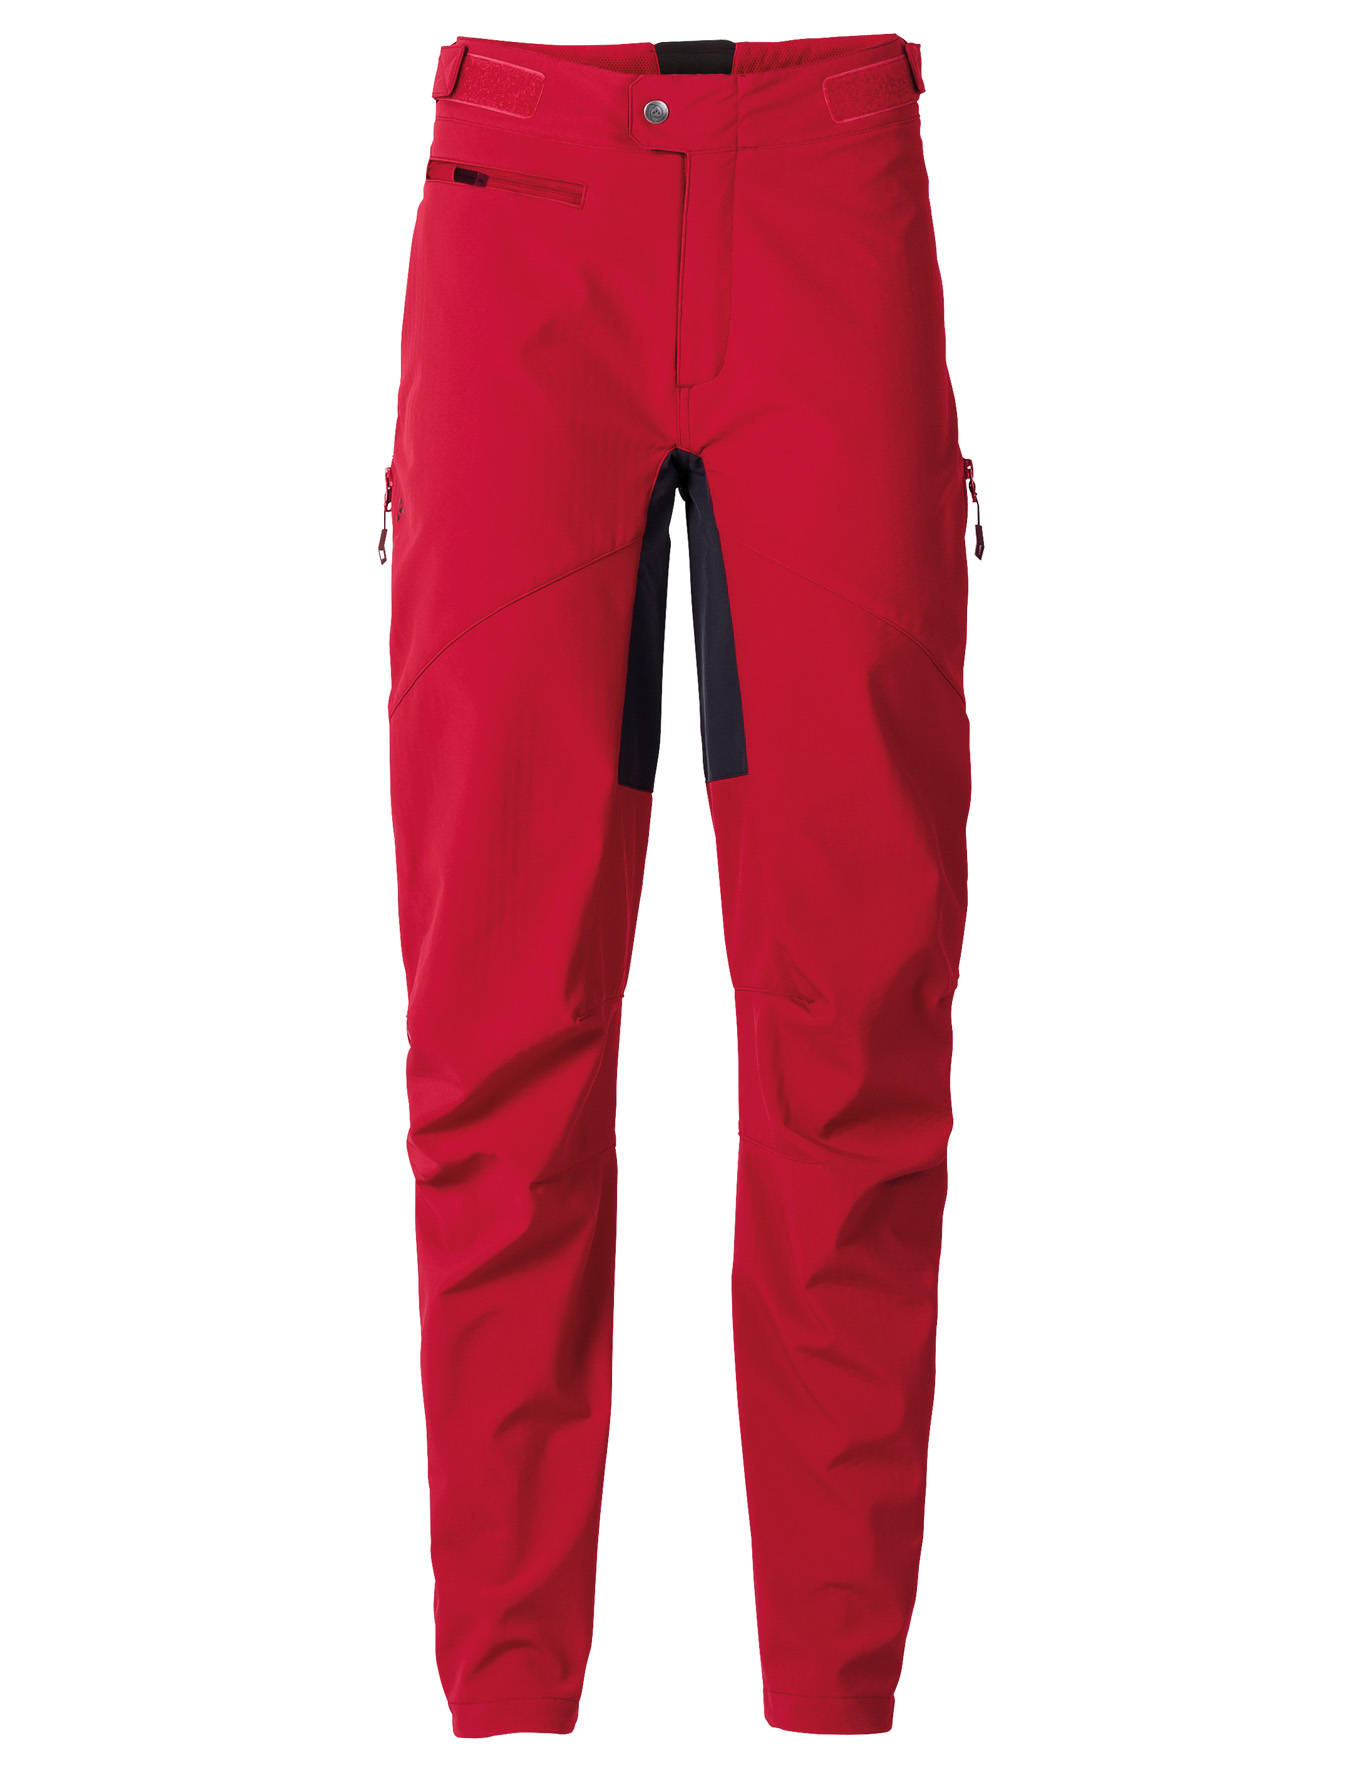 VAUDE Women´s Qimsa Softshell Pants II indian red Größe 44 - schneider-sports